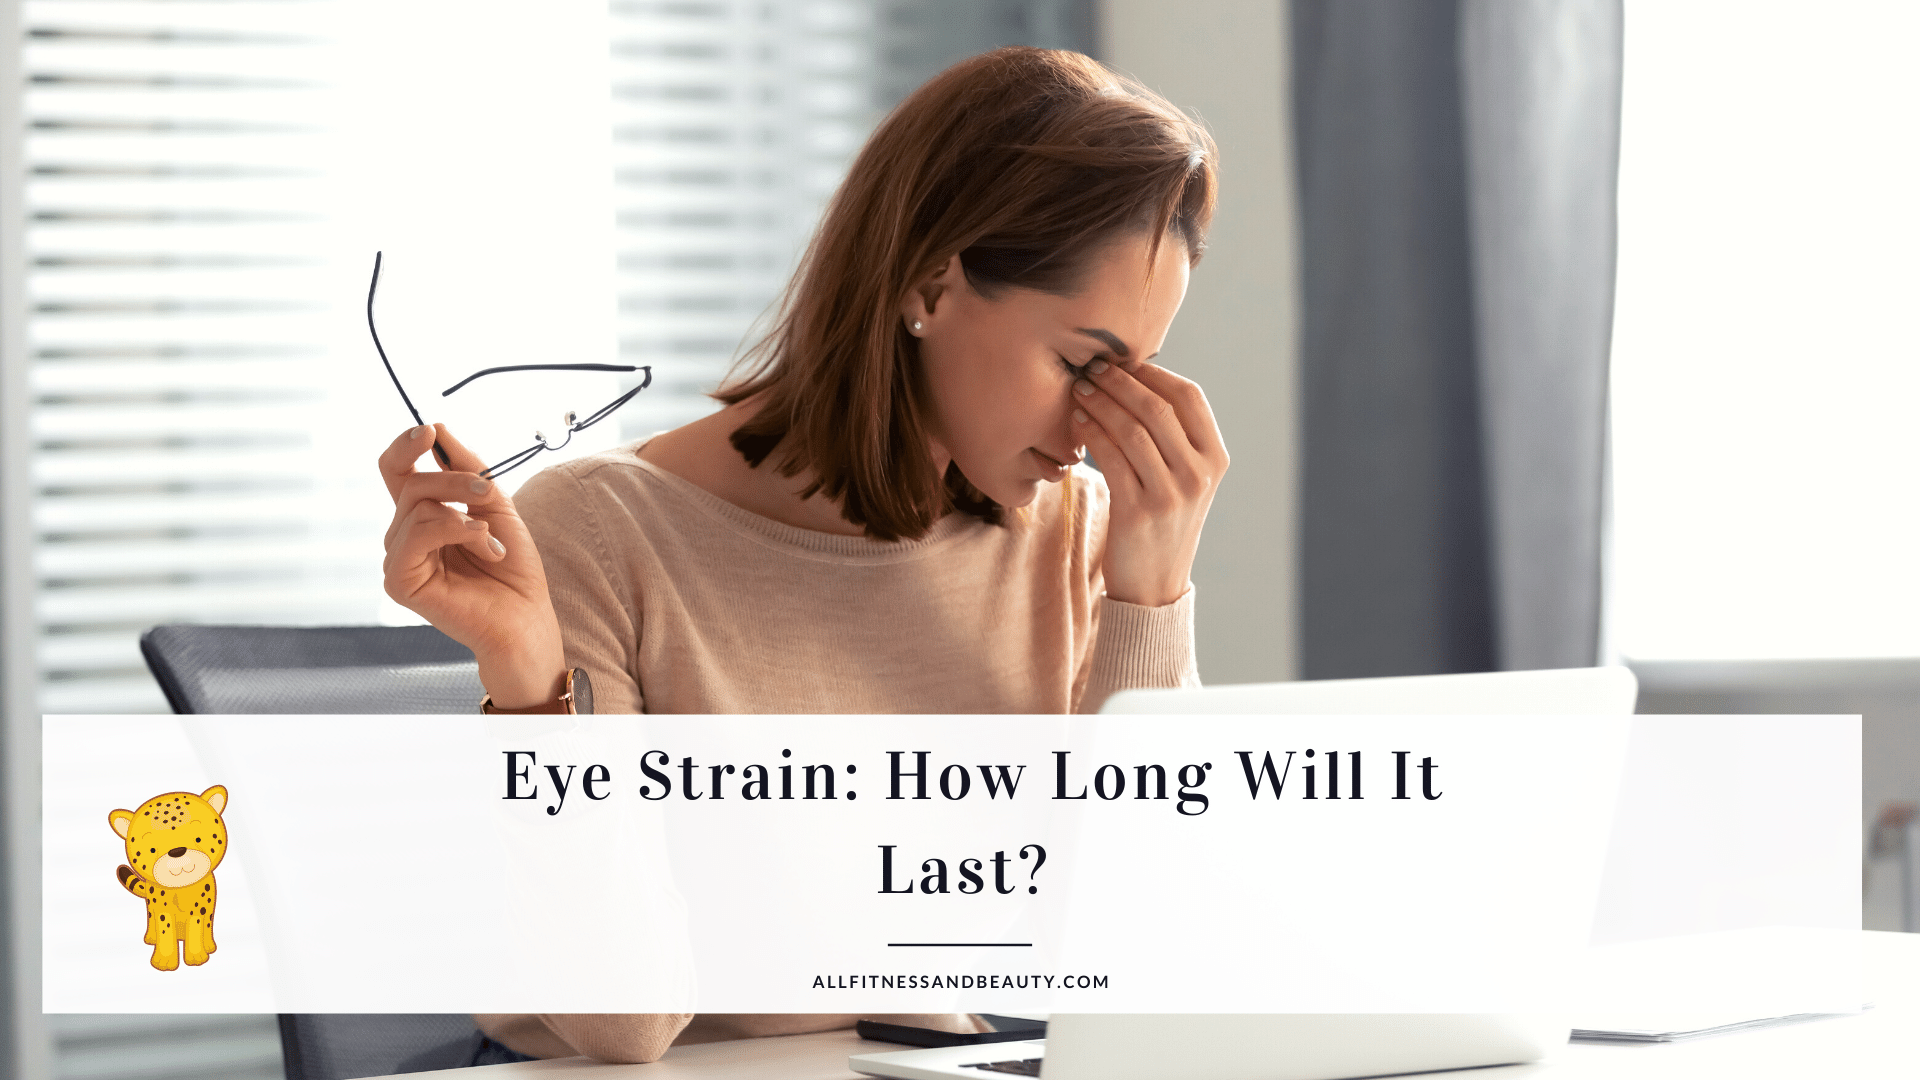 Eye strain is annoying. It's uncomfortable. But is it a permanent thing? How long does eye strain last? It's important to remember that eye strain isn't a disease. Rather, it's a symptom that arises when you use your eyes for a long time without taking a break. For instance, you are driving for extended periods. You also get eye strain when you read for hours. Working at the computer can also cause eye strain. Although it's an annoying symptom, it's not a serious condition. It means that it goes away, but only if you take the time to rest your eyes. How Long Does Eye Strain Last and Does It Require Treatment? In most cases, eye strain doesn't require treatment. However, you can quickly relieve the pain by applying artificial tears. The eye strain can last for a few minutes to an hour. But if your eye strain lasts for a day or so, it can indicate that you have an underlying eye condition. Talk to your ophthalmologist. Symptoms of an Eye Strain You can describe the symptoms as mild tearing, eye soreness, blurring of vision, doubling of vision, light sensitivity, tightness of the temples, and back/neck soreness, among others. You may also get a headache. It's a common symptom. The pain is located in both temples. But it's not pounding. The pain may not stop if you don't halt your visual task. But once you do, the pain will go away. There's no specific test that can prove that your symptoms are the results of an eye strain. However, if you are experiencing pain in the eye that lasts for hours or more than a day and it's accompanied by visual loss and redness, then your doctor might prescribe you a treatment. You may need to undergo an eye examination, especially if there's redness or irritation of the eyes. If your eye strain isn't relieved after resting your eyes, your doctor will examine your eyes and find out if you need glasses. If your doctor thinks that glasses will make your eyes more comfortable, then you may need to wear prescription glasses. Possible Treatment